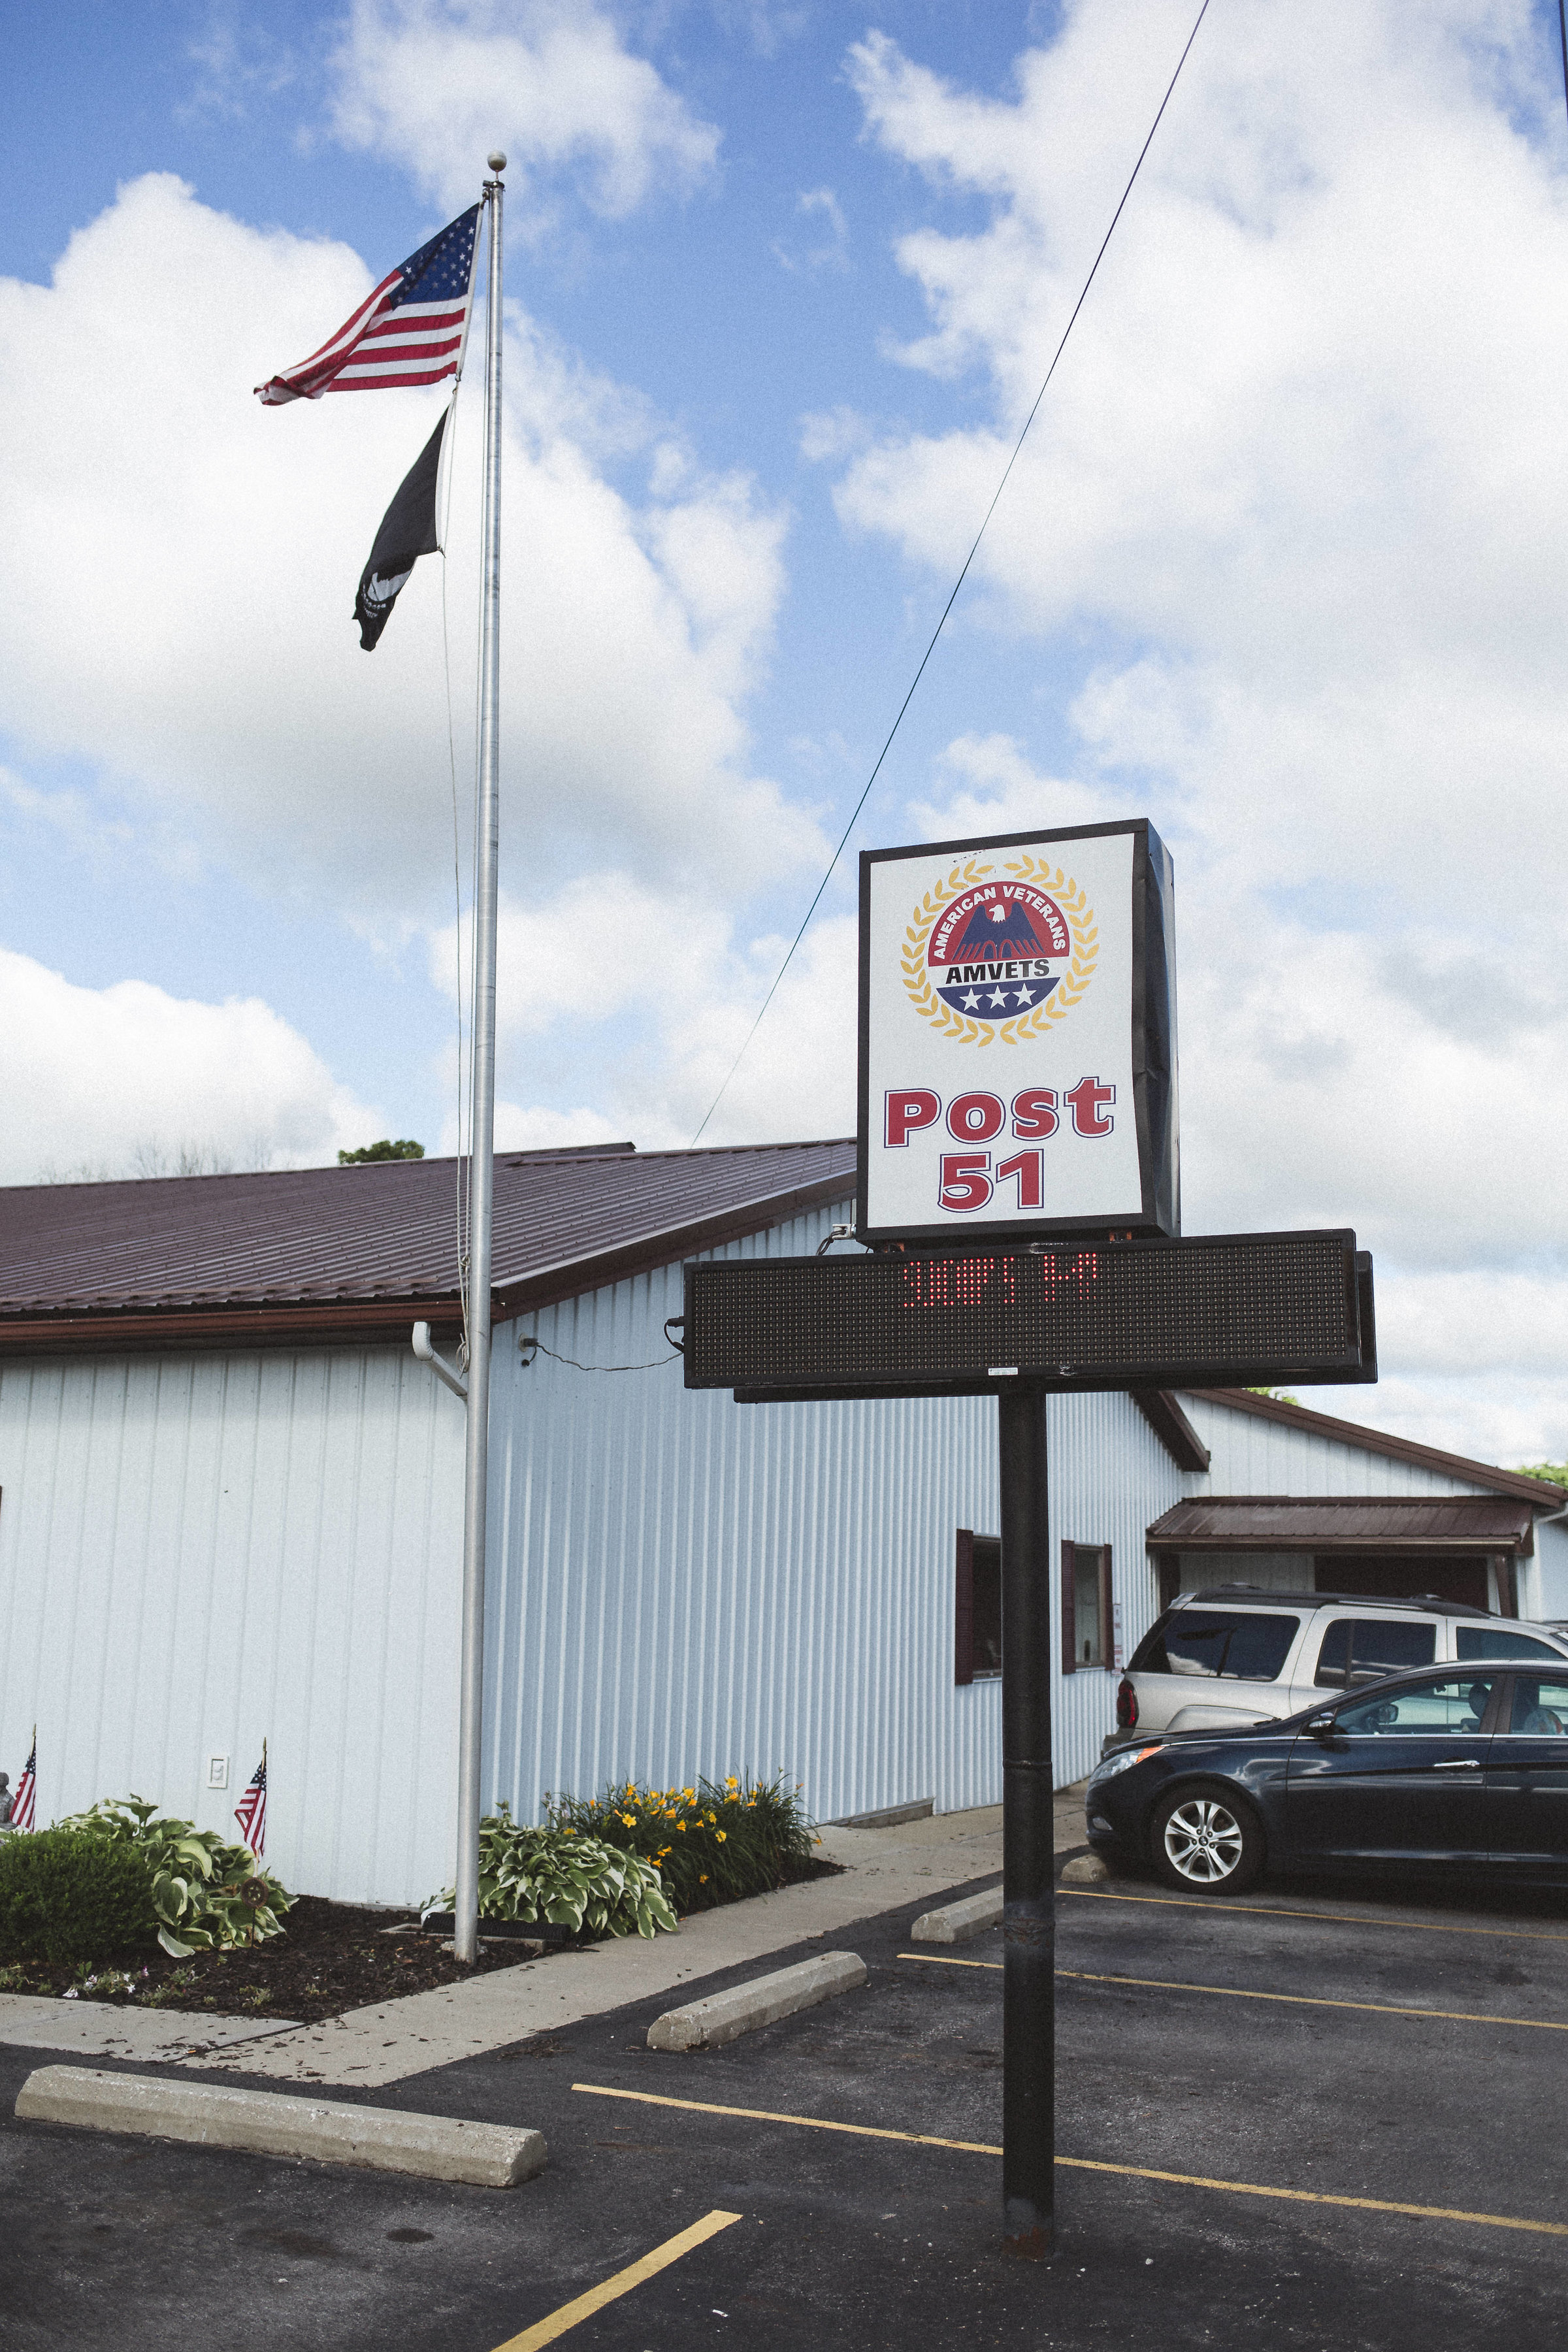 AMVETS Post 51 in Thornville, Ohio